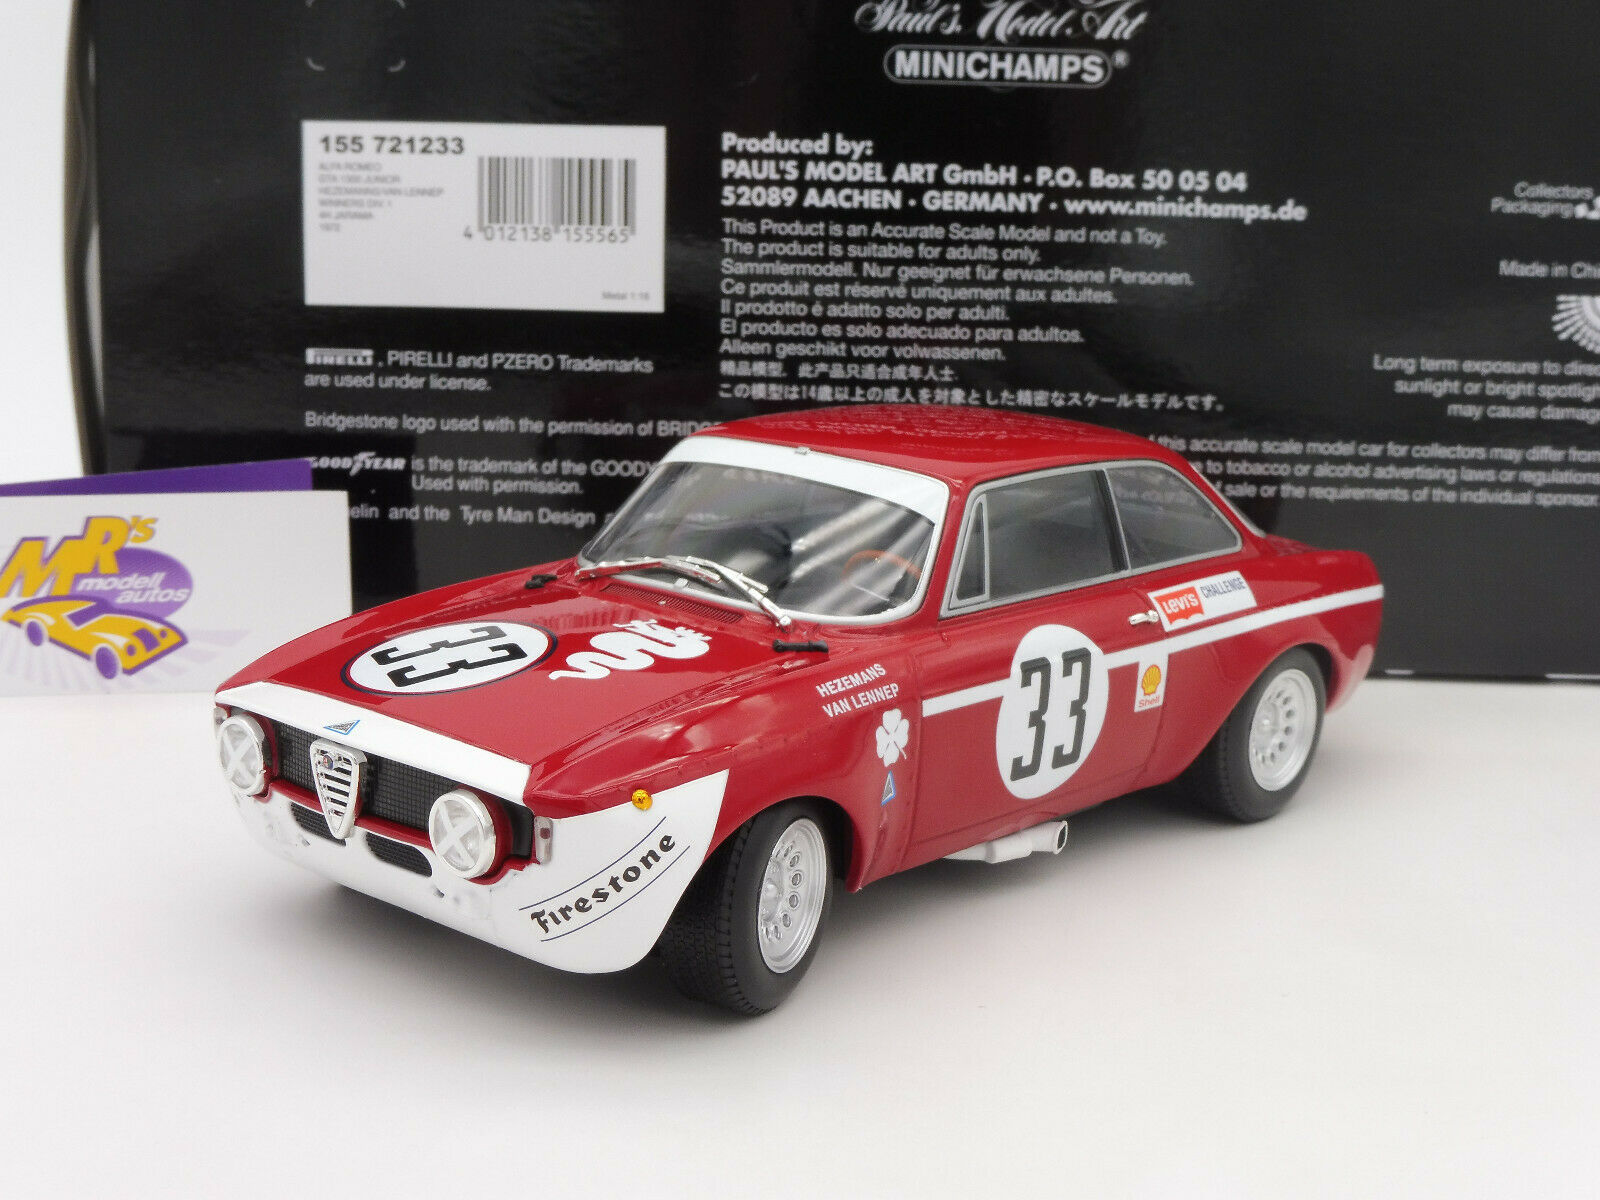 Minichamps 155721233 # ALFA ROMEO GTA 1300 Junior WINNER 4h. Jarama 1972 1:18